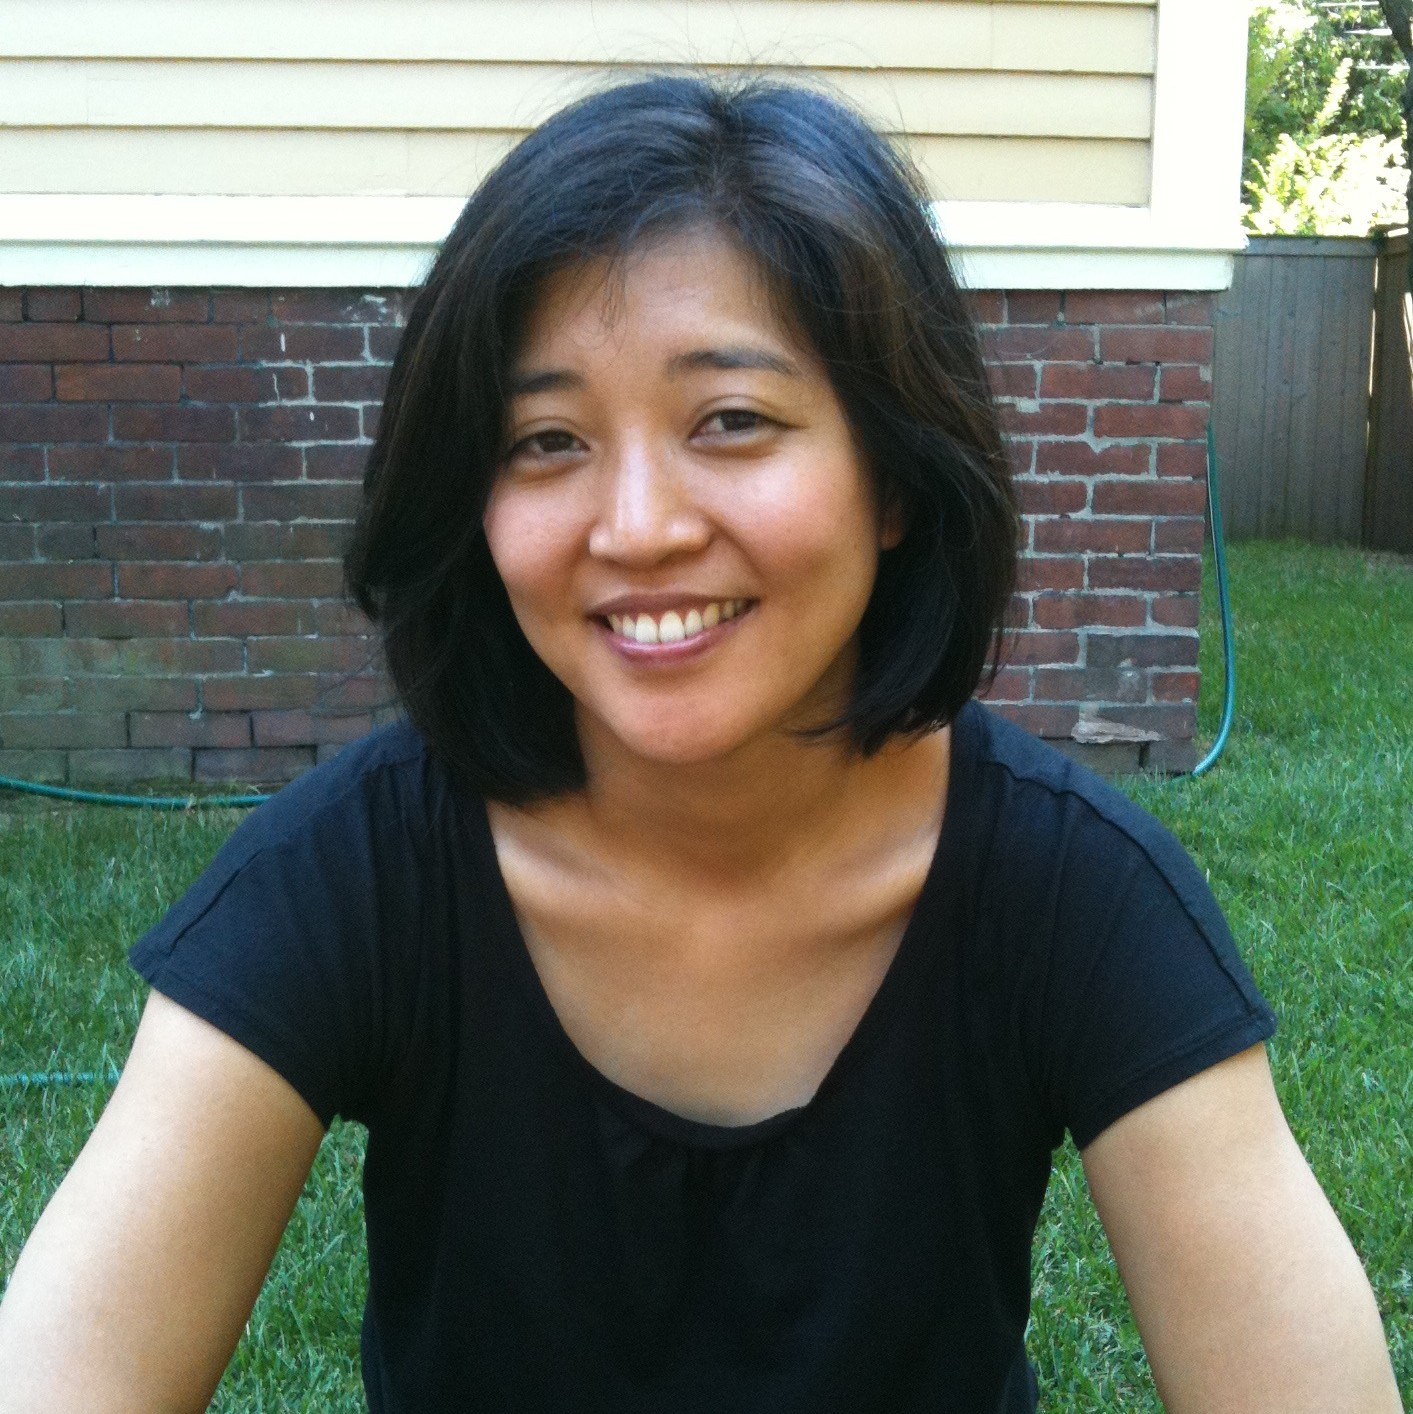 Mia Chung / Courtesy Woolly Mammoth Theatre Company